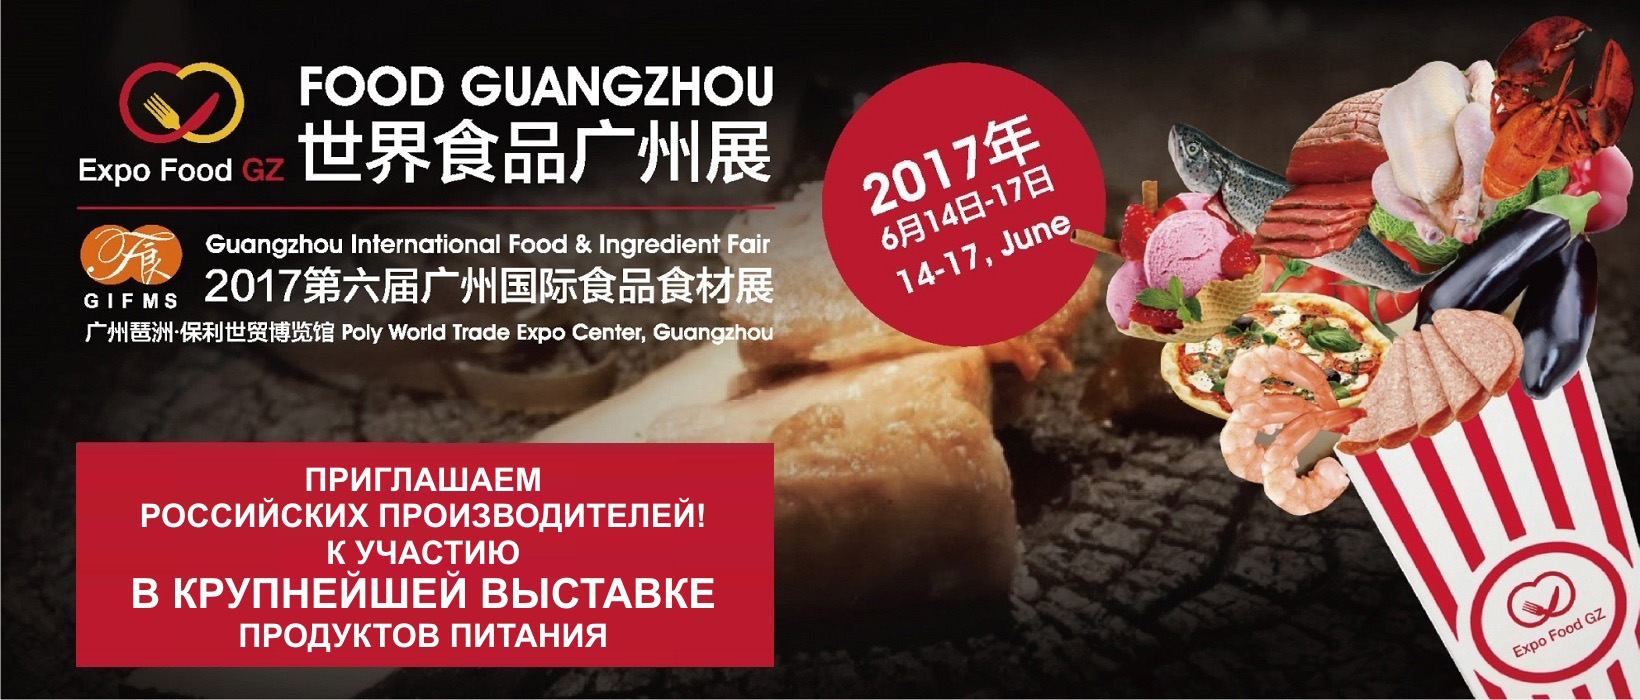 Expo Food Guangzhou 2017